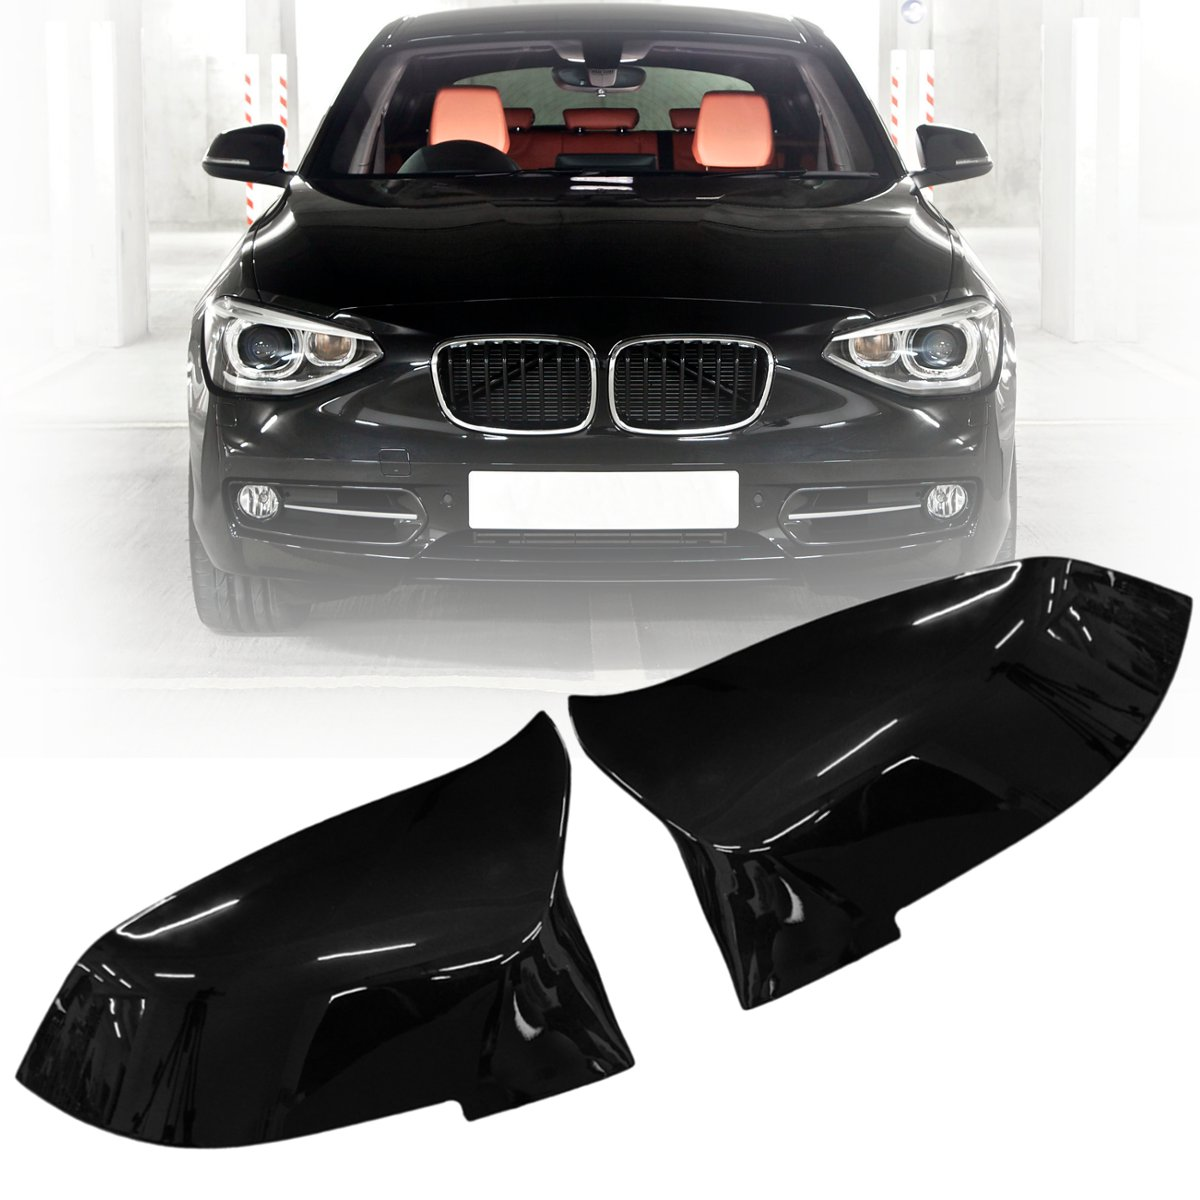 4 color Pair Gloss Black Rearview Mirror Cover For BMW F20 F21 F22 F30 F32 F36 X1 F87 M3 2012 2013 2014 2015 2016 2017 1 pair gloss black m color front bumper center kidney grilles for bmw x3 f25 2011 2012 2013 2014 racing grills